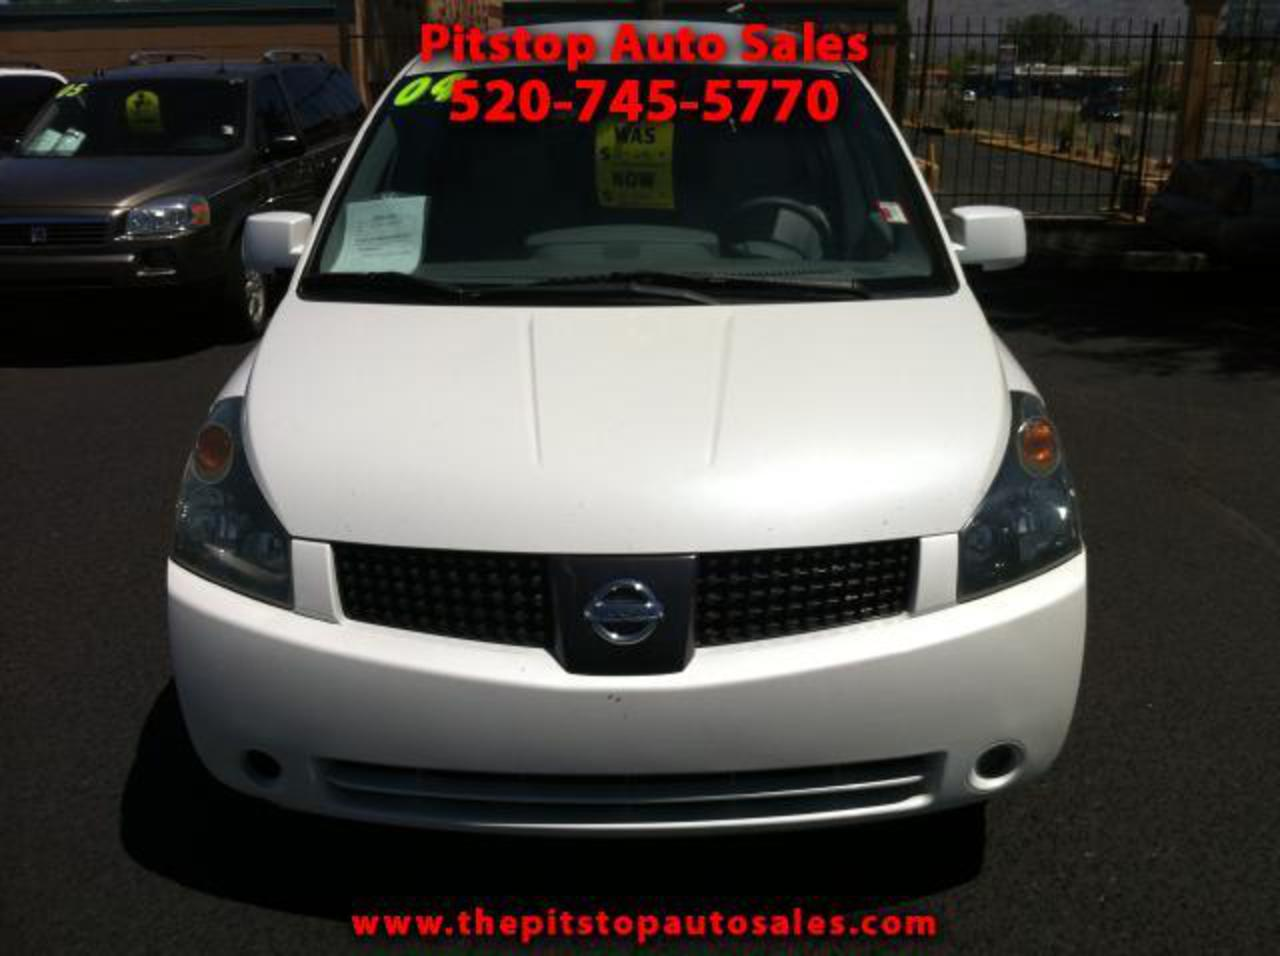 2004 NISSAN QUEST 3.5 SE. showing 1 of 13